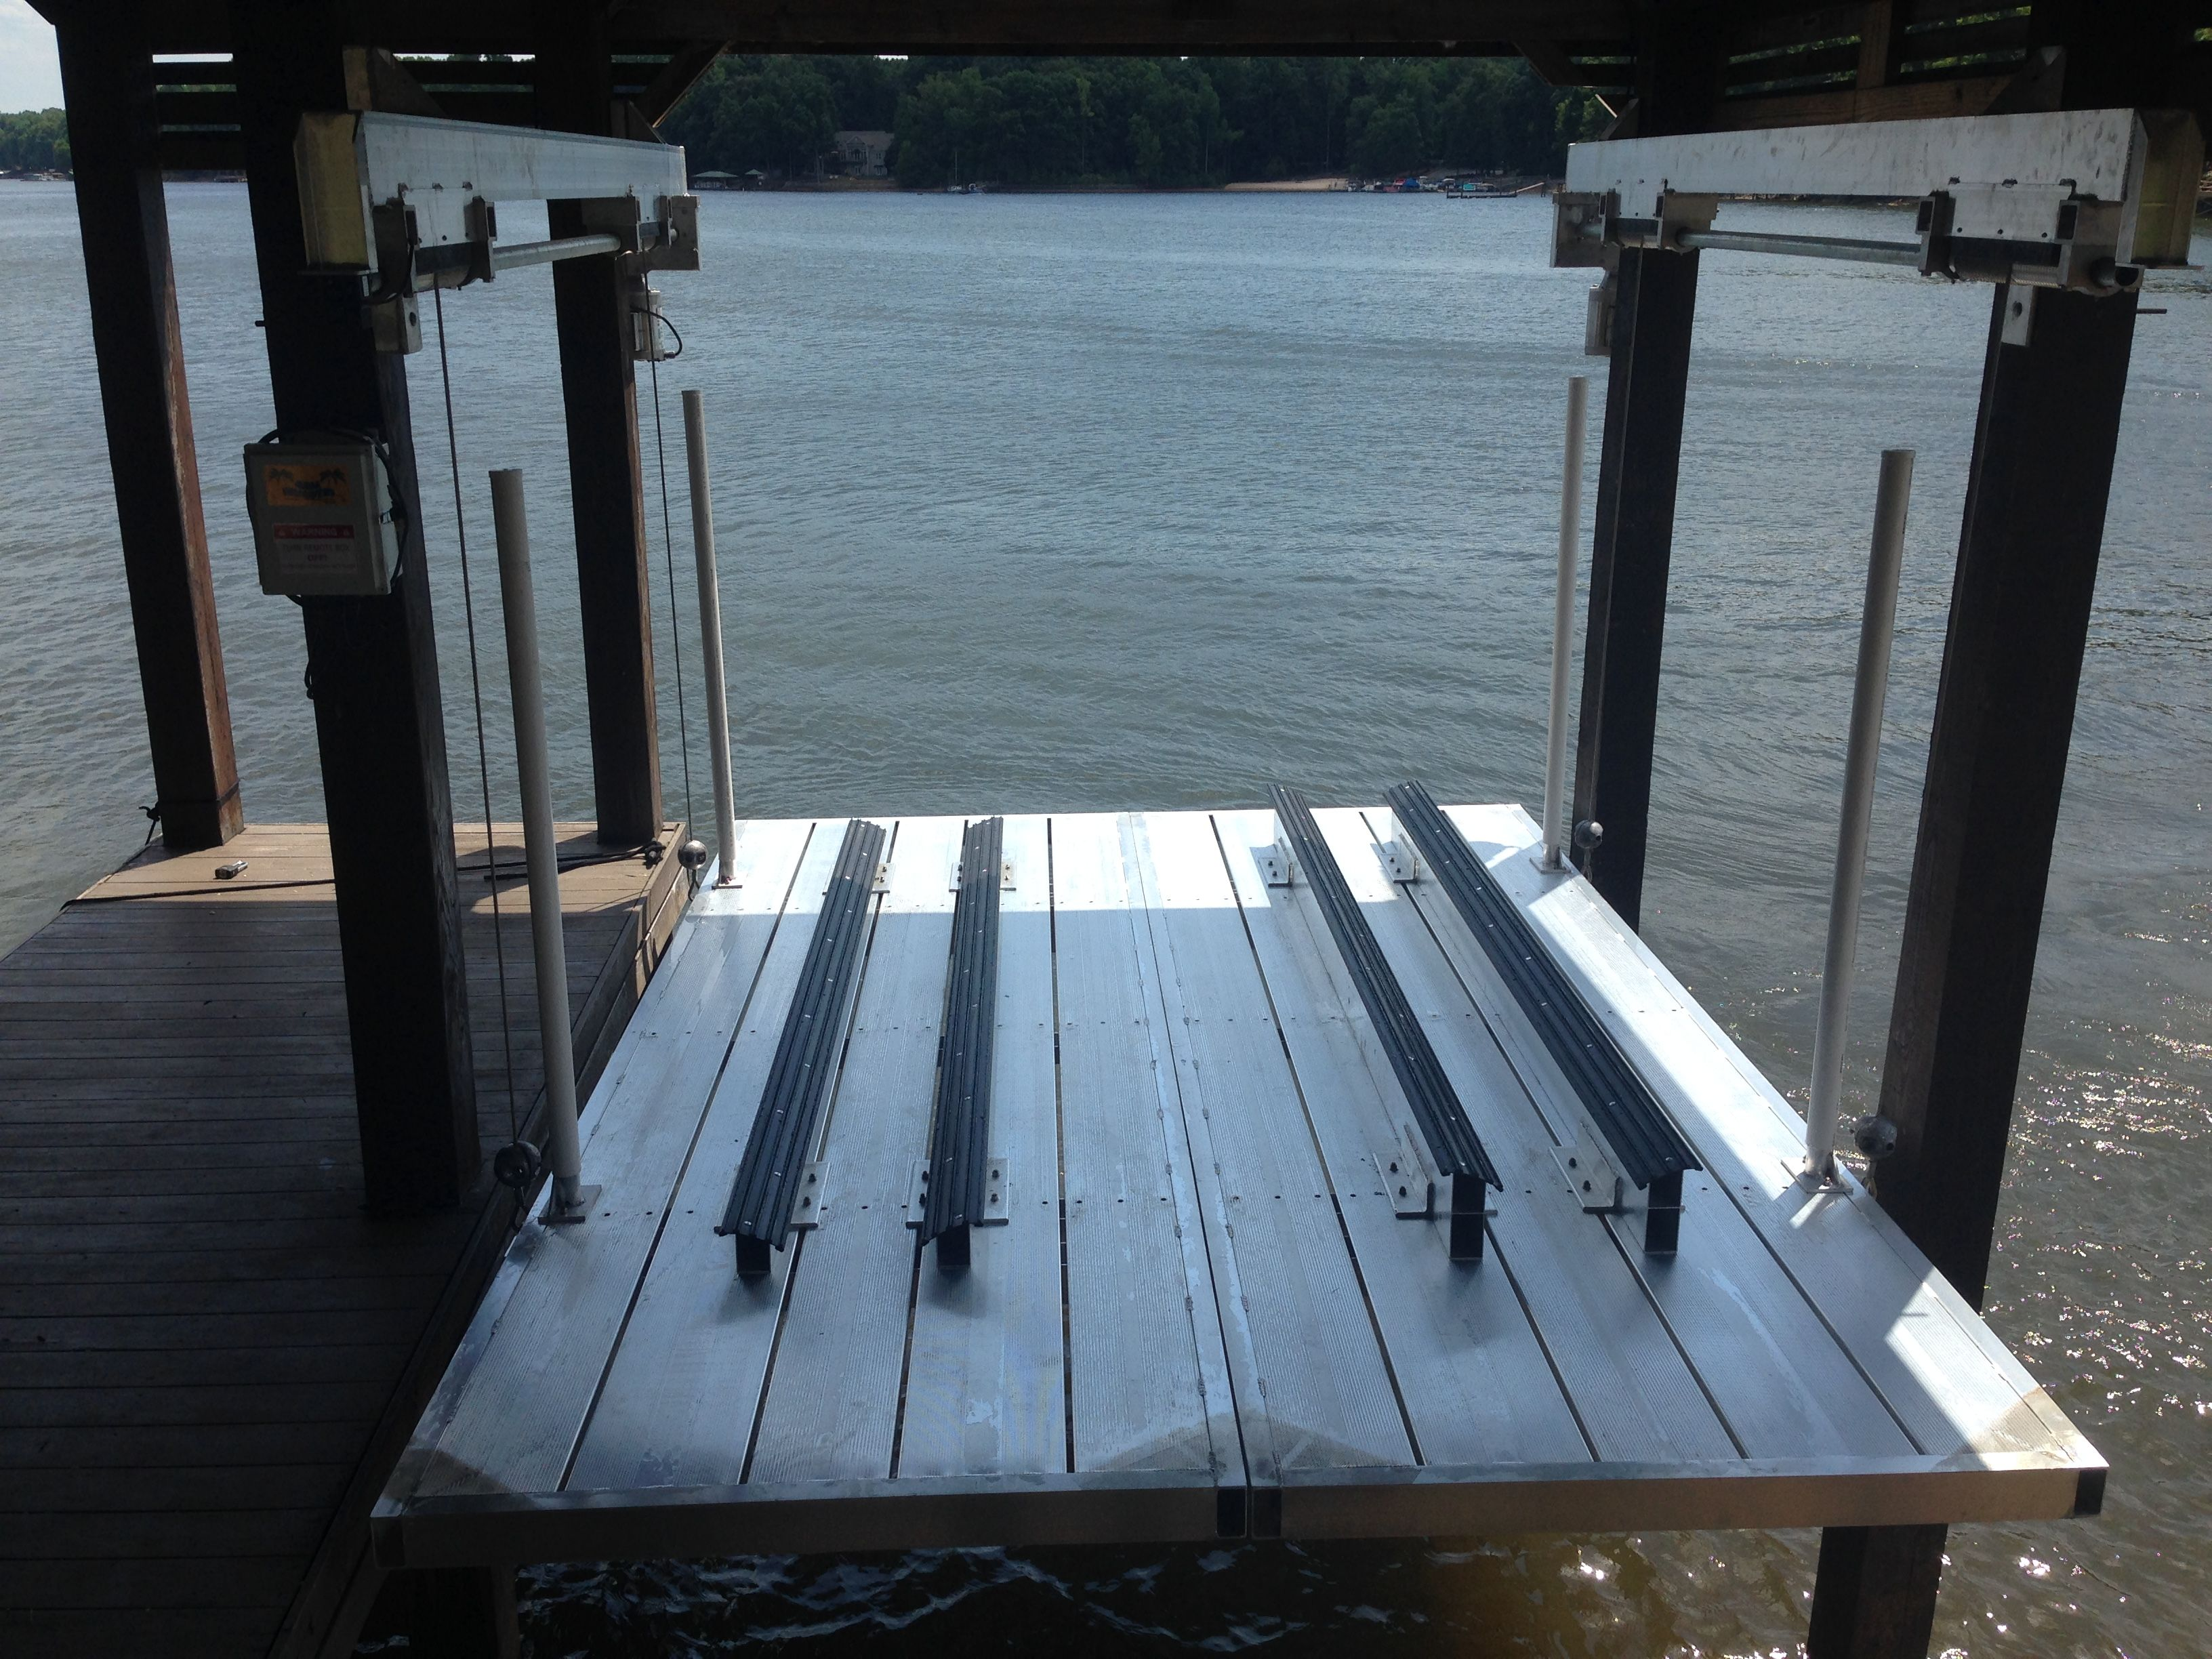 Aluminum Deck Lift A Great Way To Store Your Jet Skis When Not